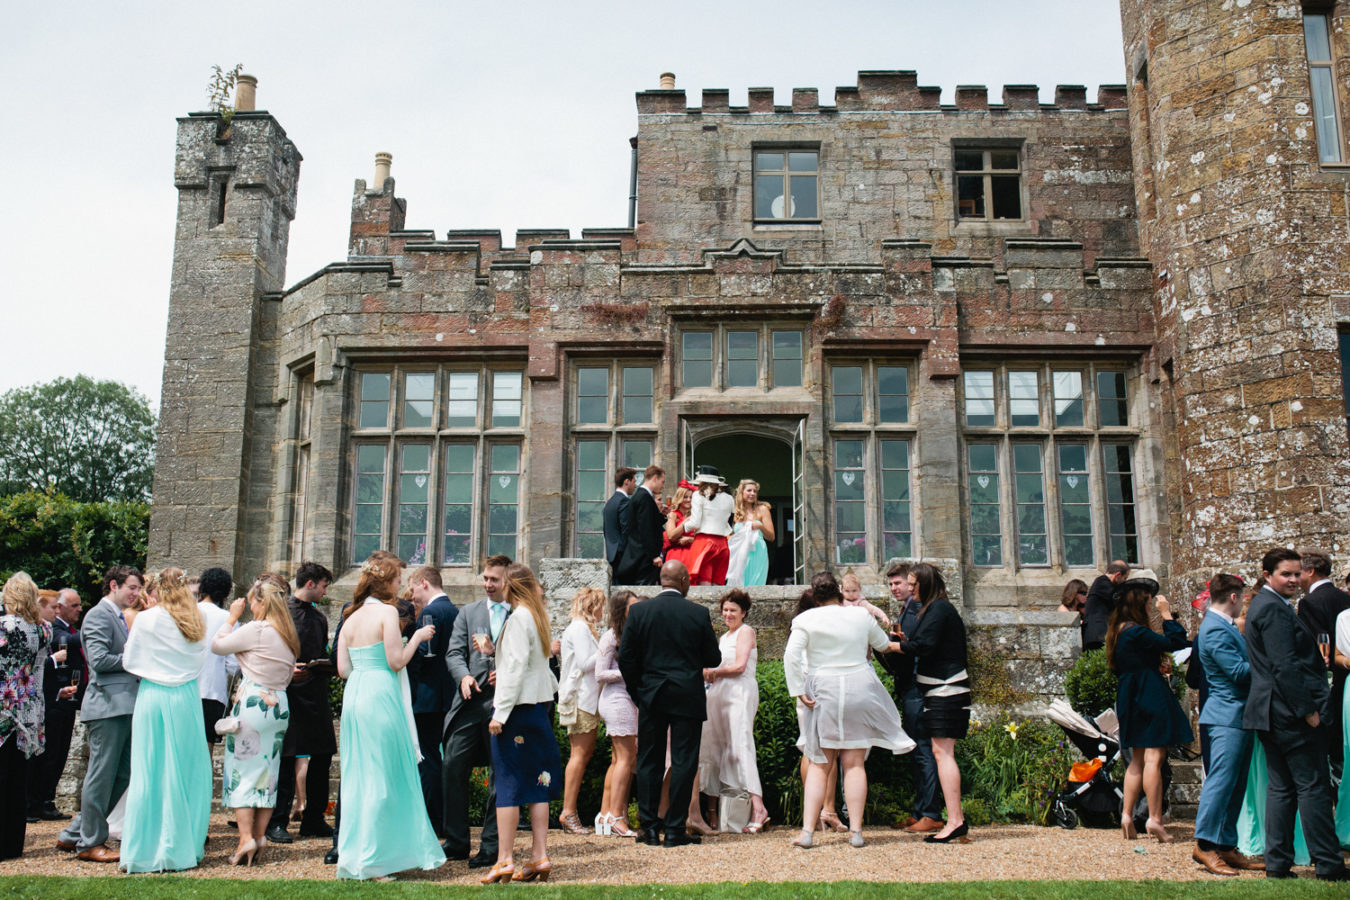 Wedding guests on the steps at a Wadhurst Castle wedding